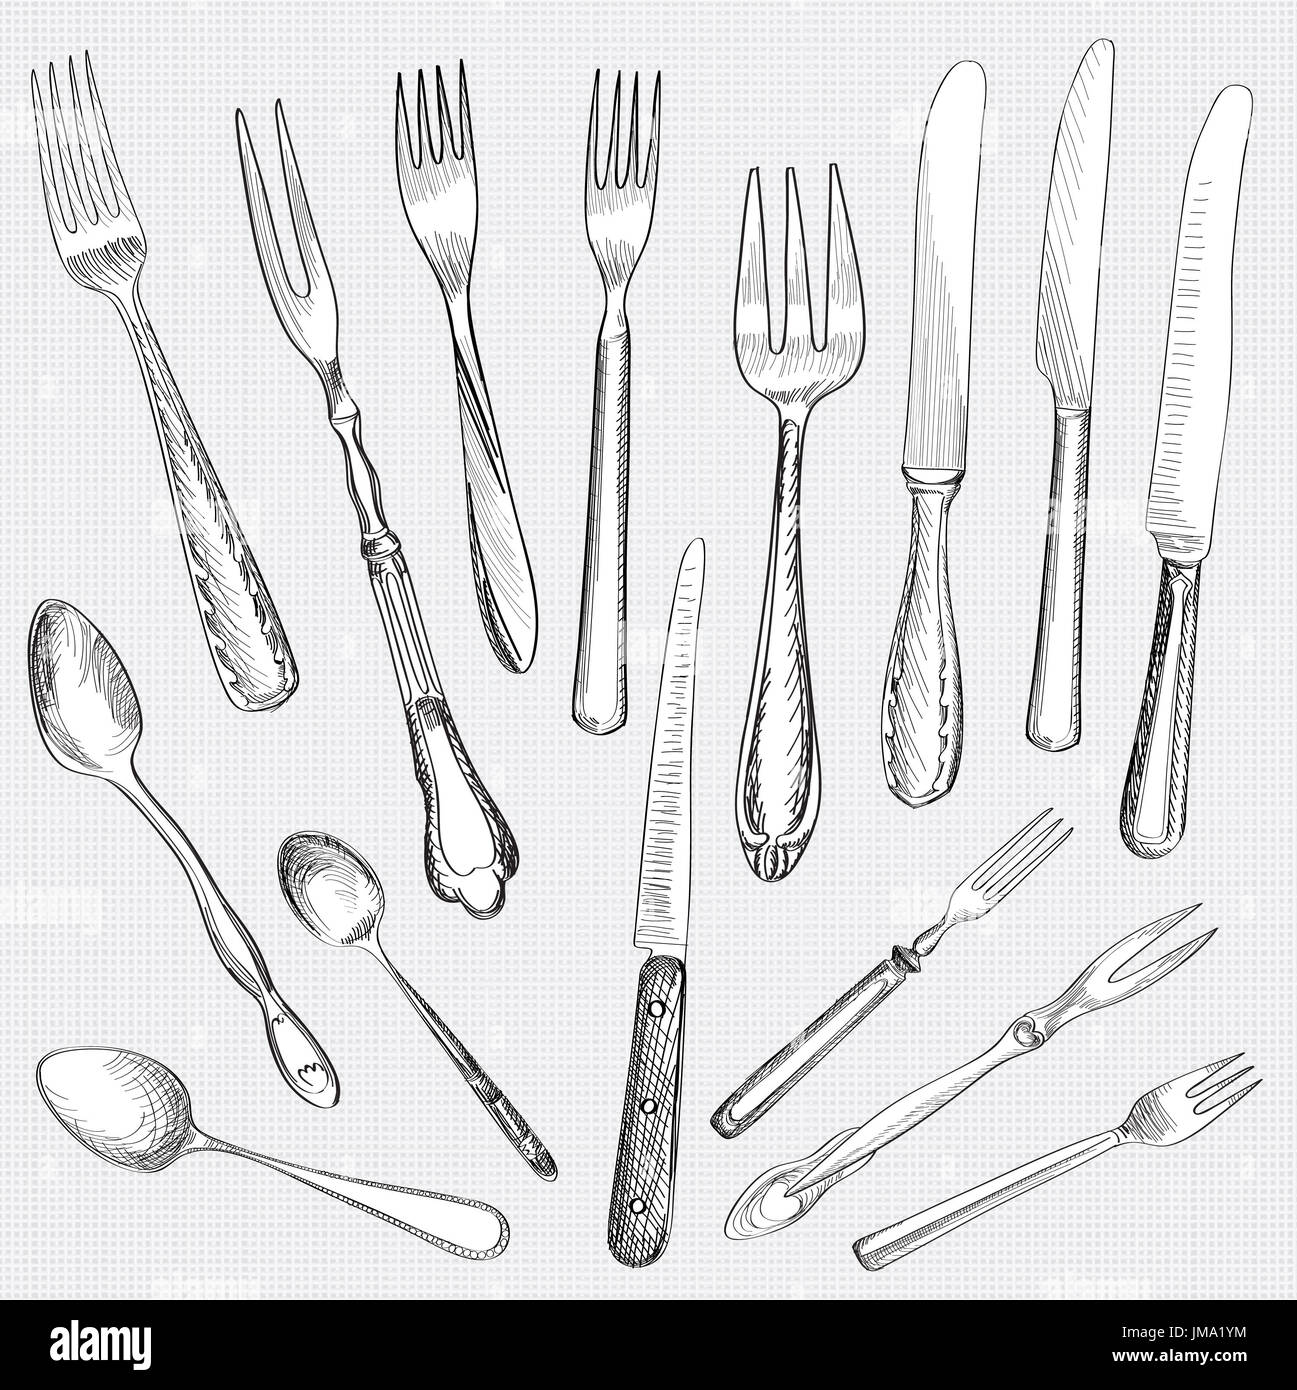 Table setting set. Fork Knife Spoon sketch set. Cutlery hand drawing collection. Catering engraved vector illustration. Restaurant service. Banquet  sc 1 st  Alamy & Table setting set. Fork Knife Spoon sketch set. Cutlery hand Stock ...